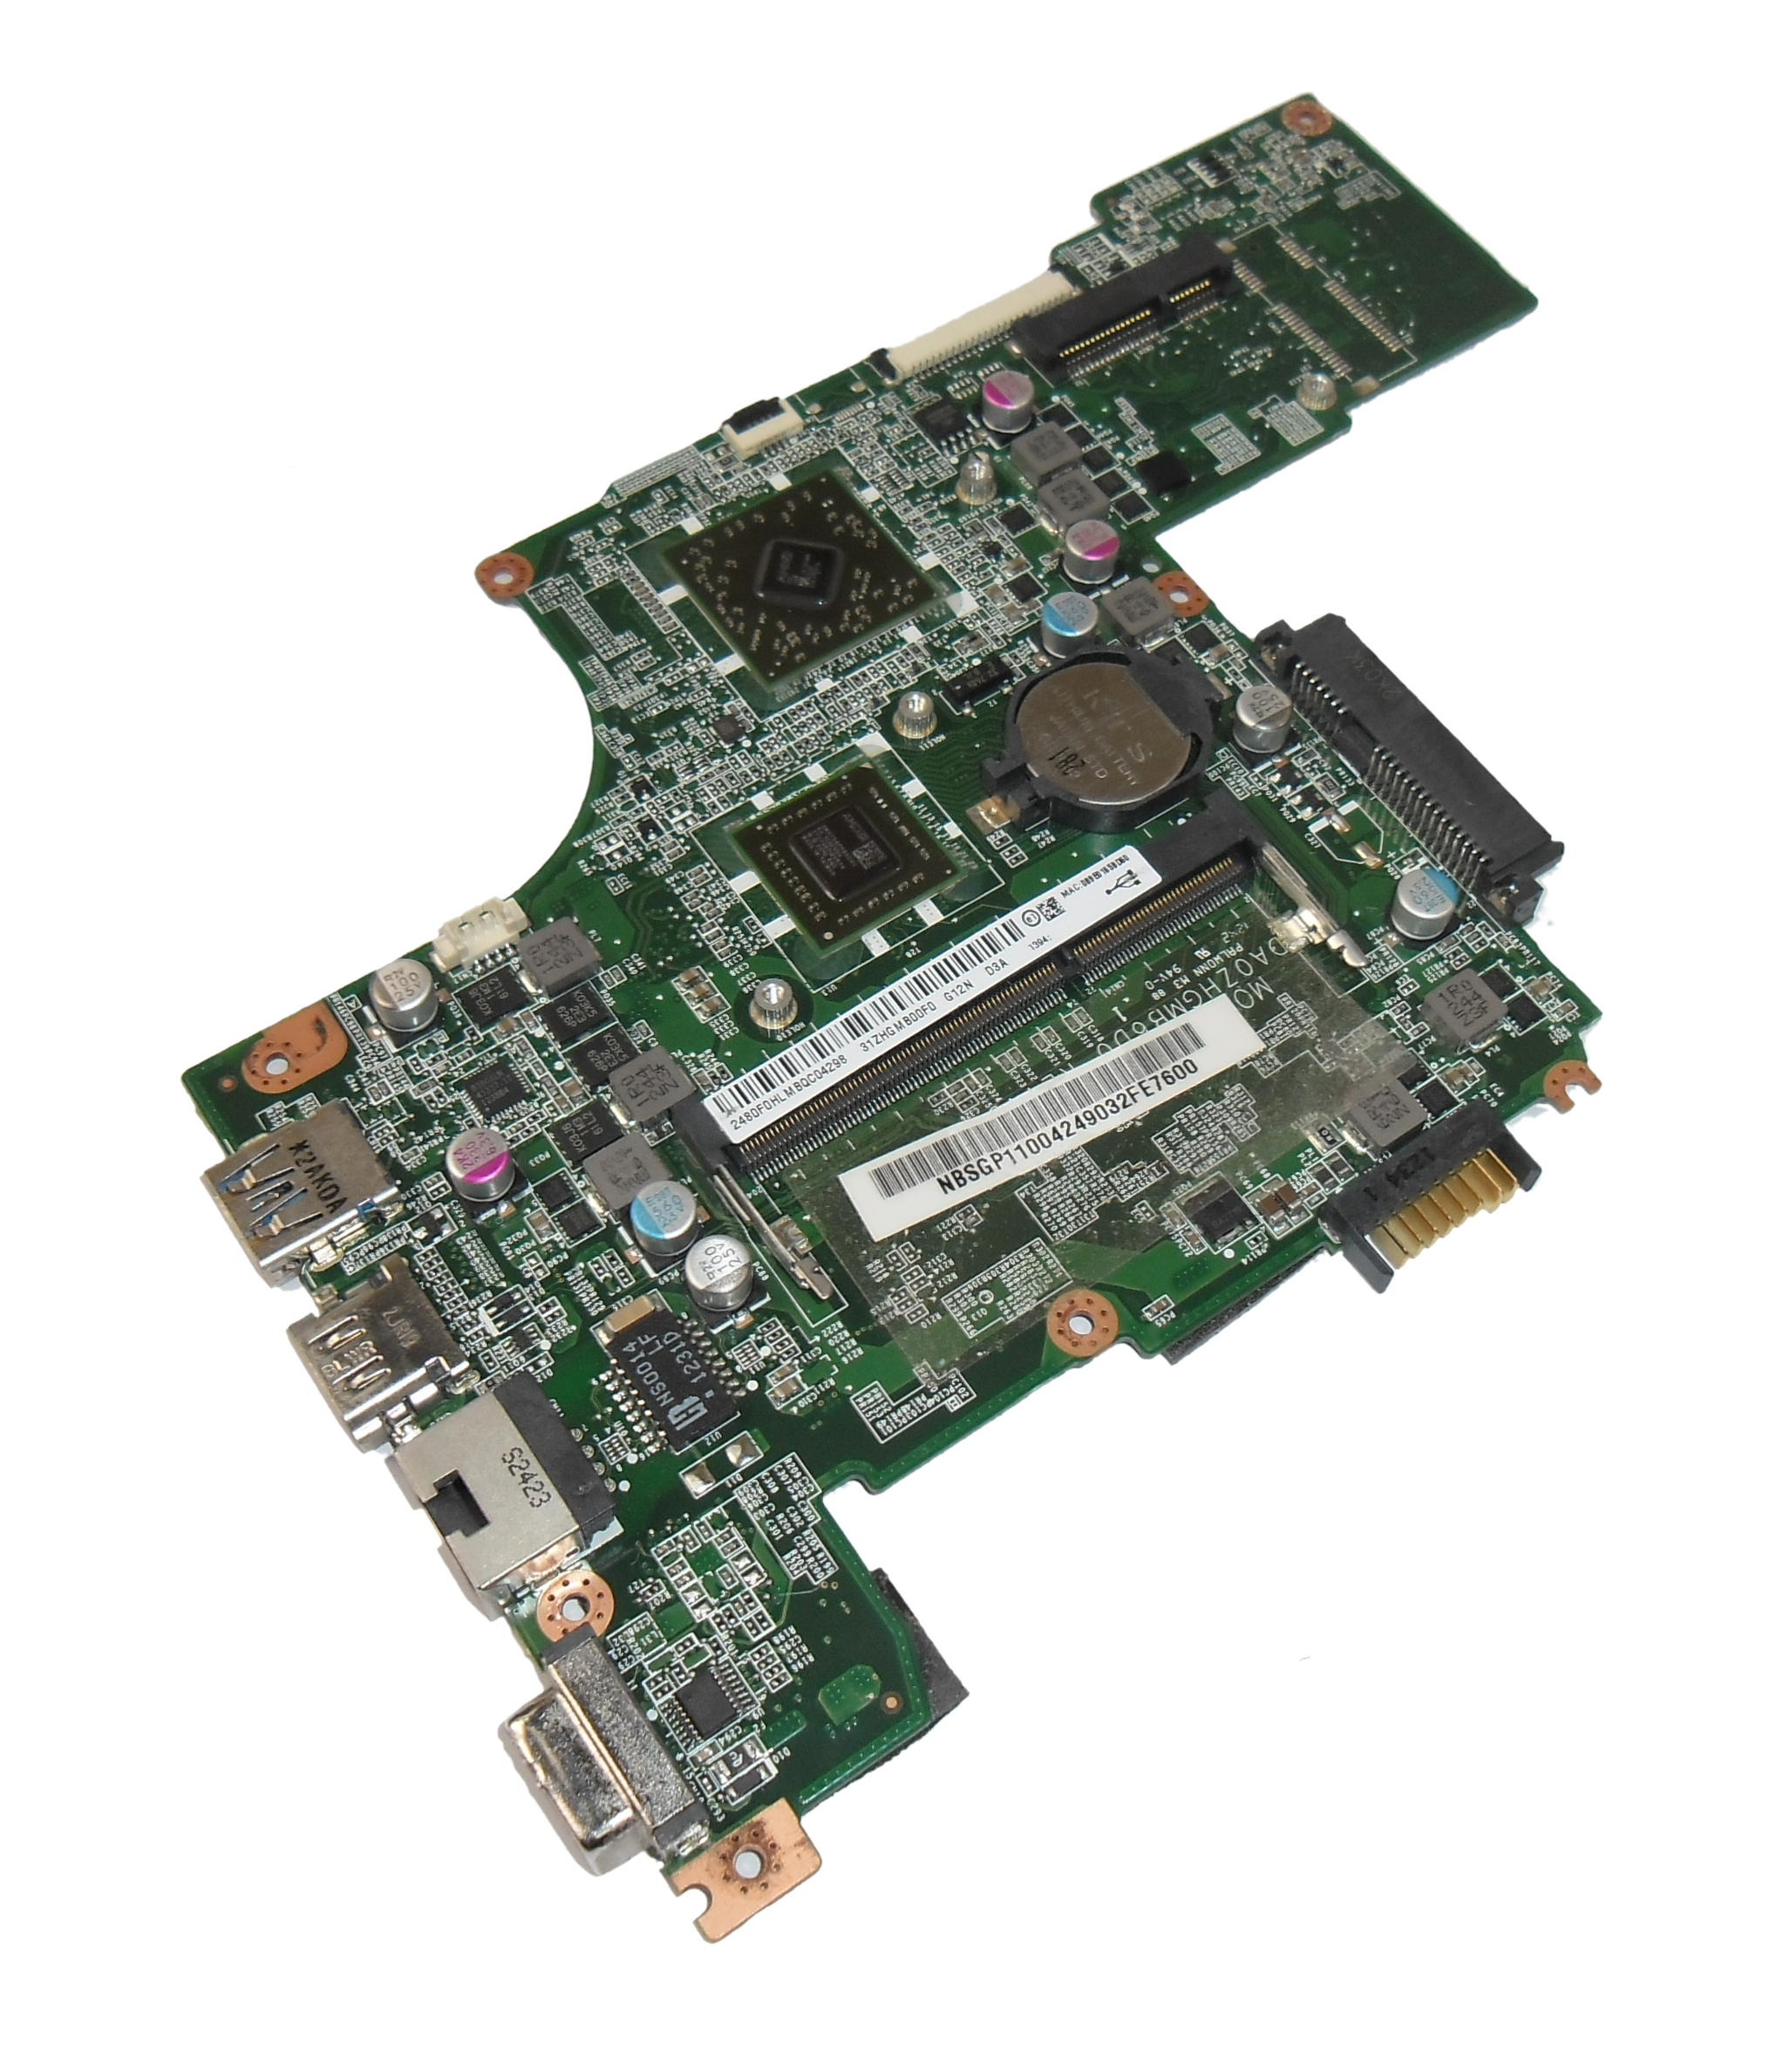 Acer NB.SGP11.004 Aspire One 725-C7Xkk Notebook Motherboard - 31ZHGMB00F0